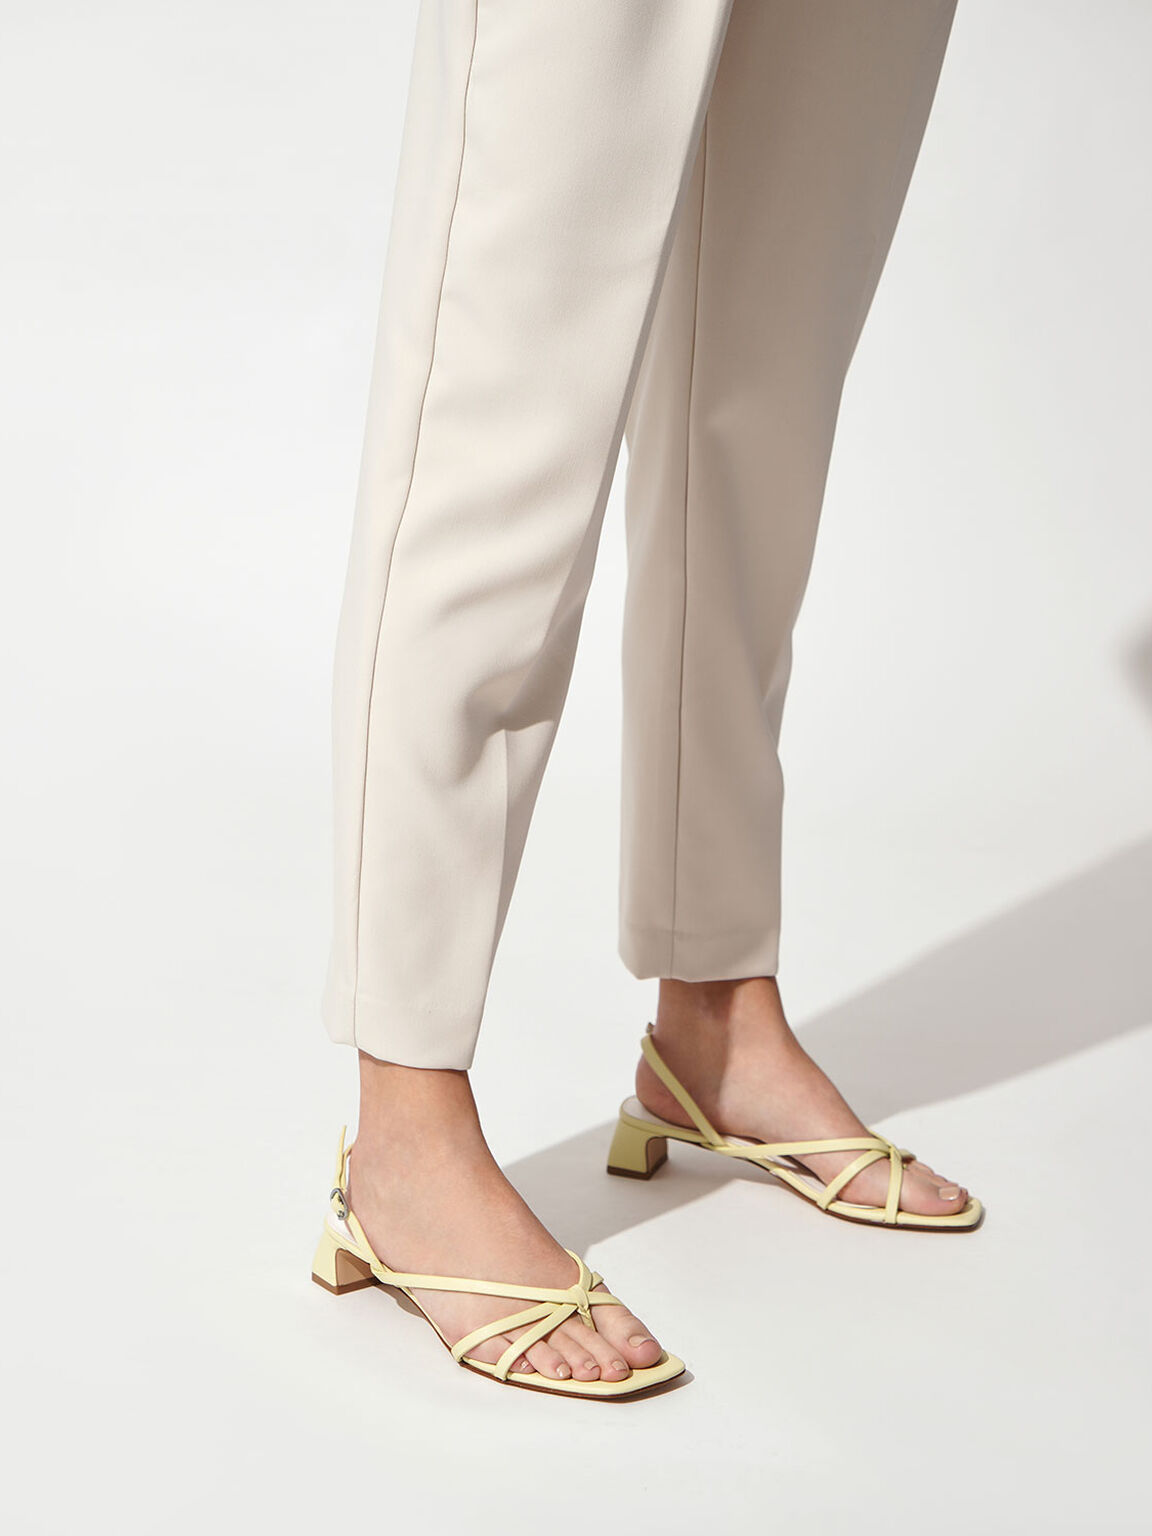 Strappy Sandals, Yellow, hi-res